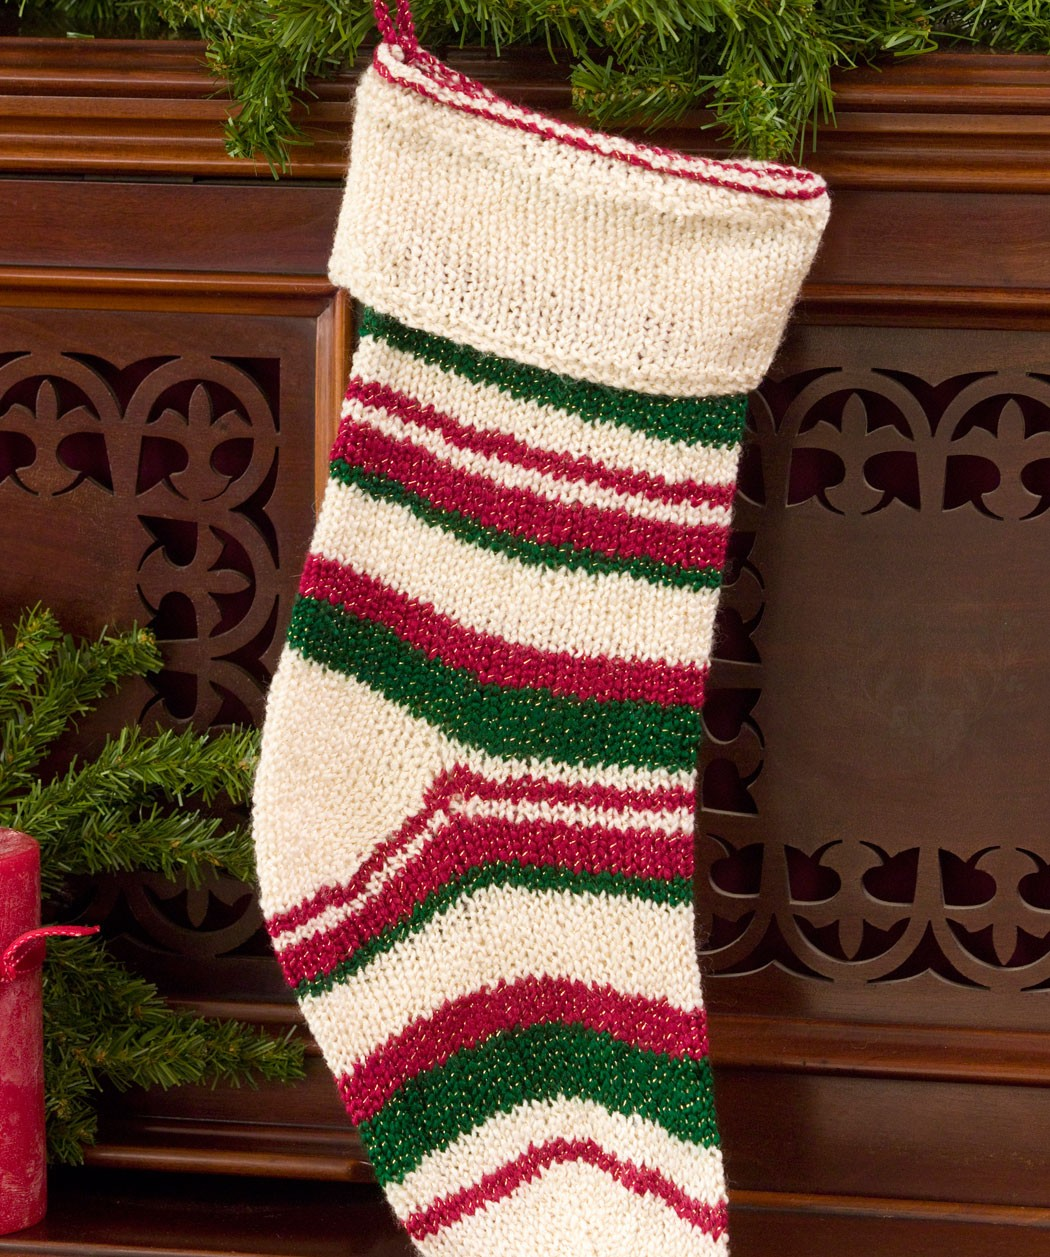 Knitted Christmas Stocking Patterns For Beginning : Free Knitting Patterns Christmas Socks images